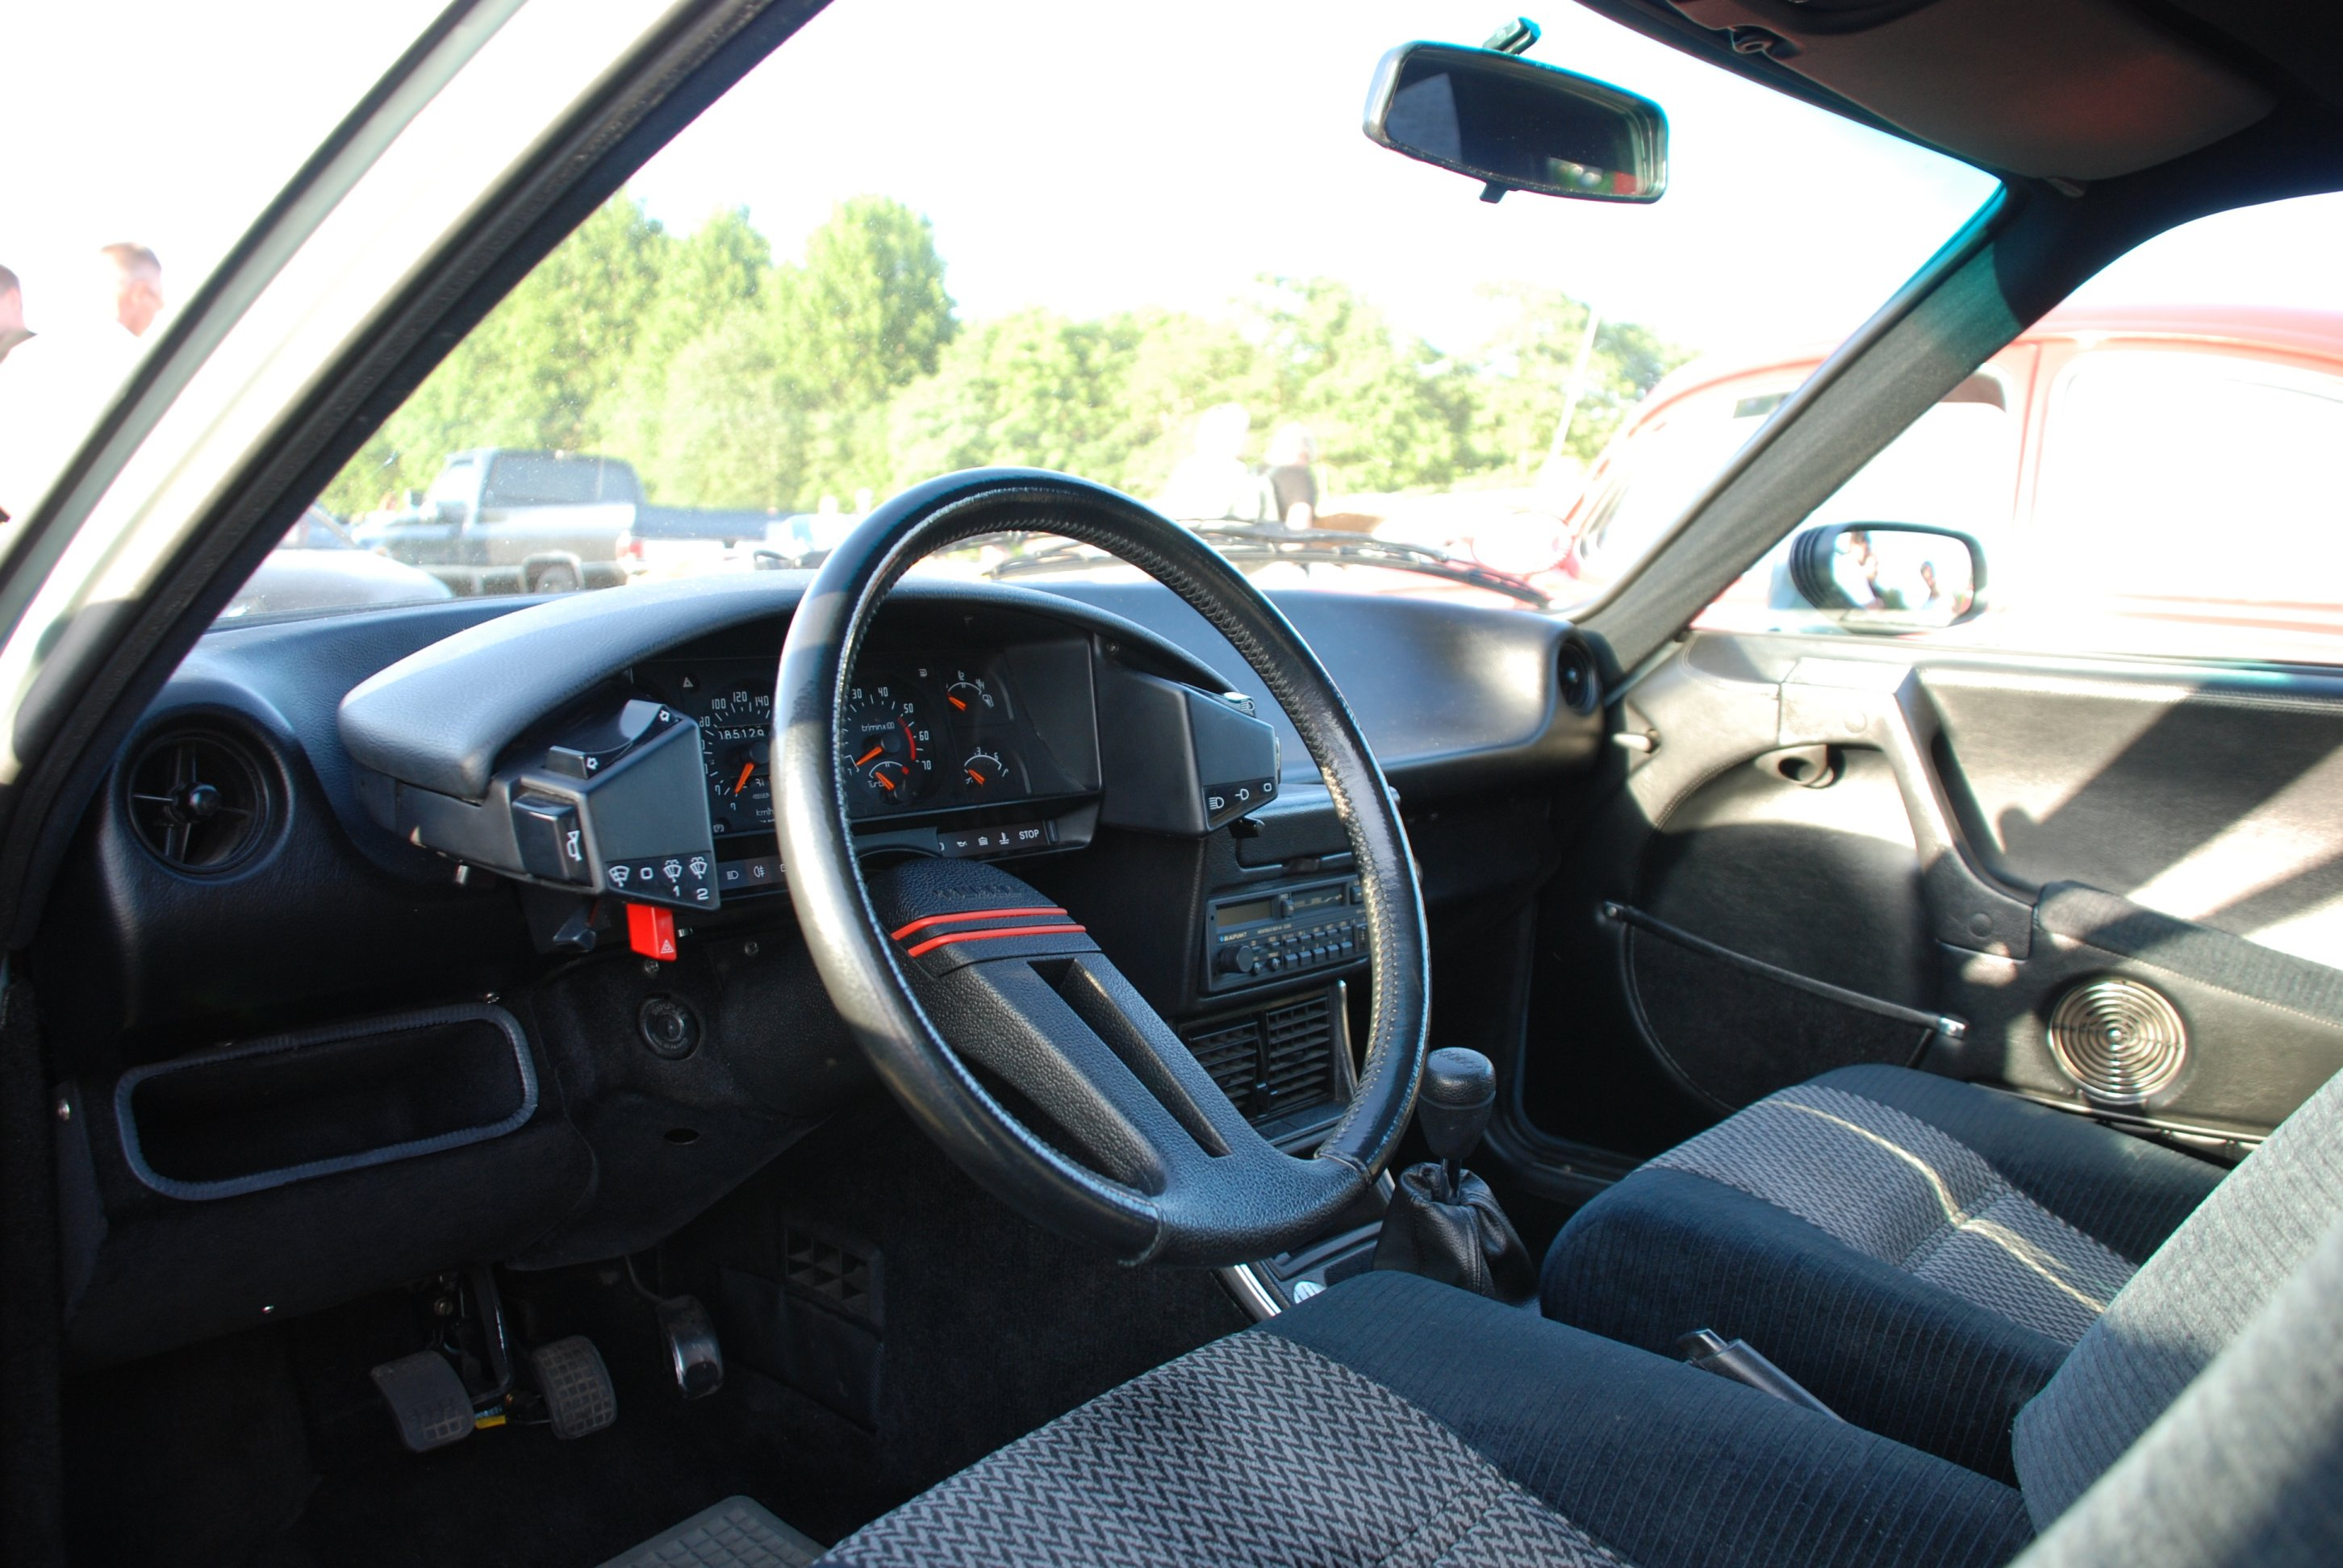 CITROEN CX interior